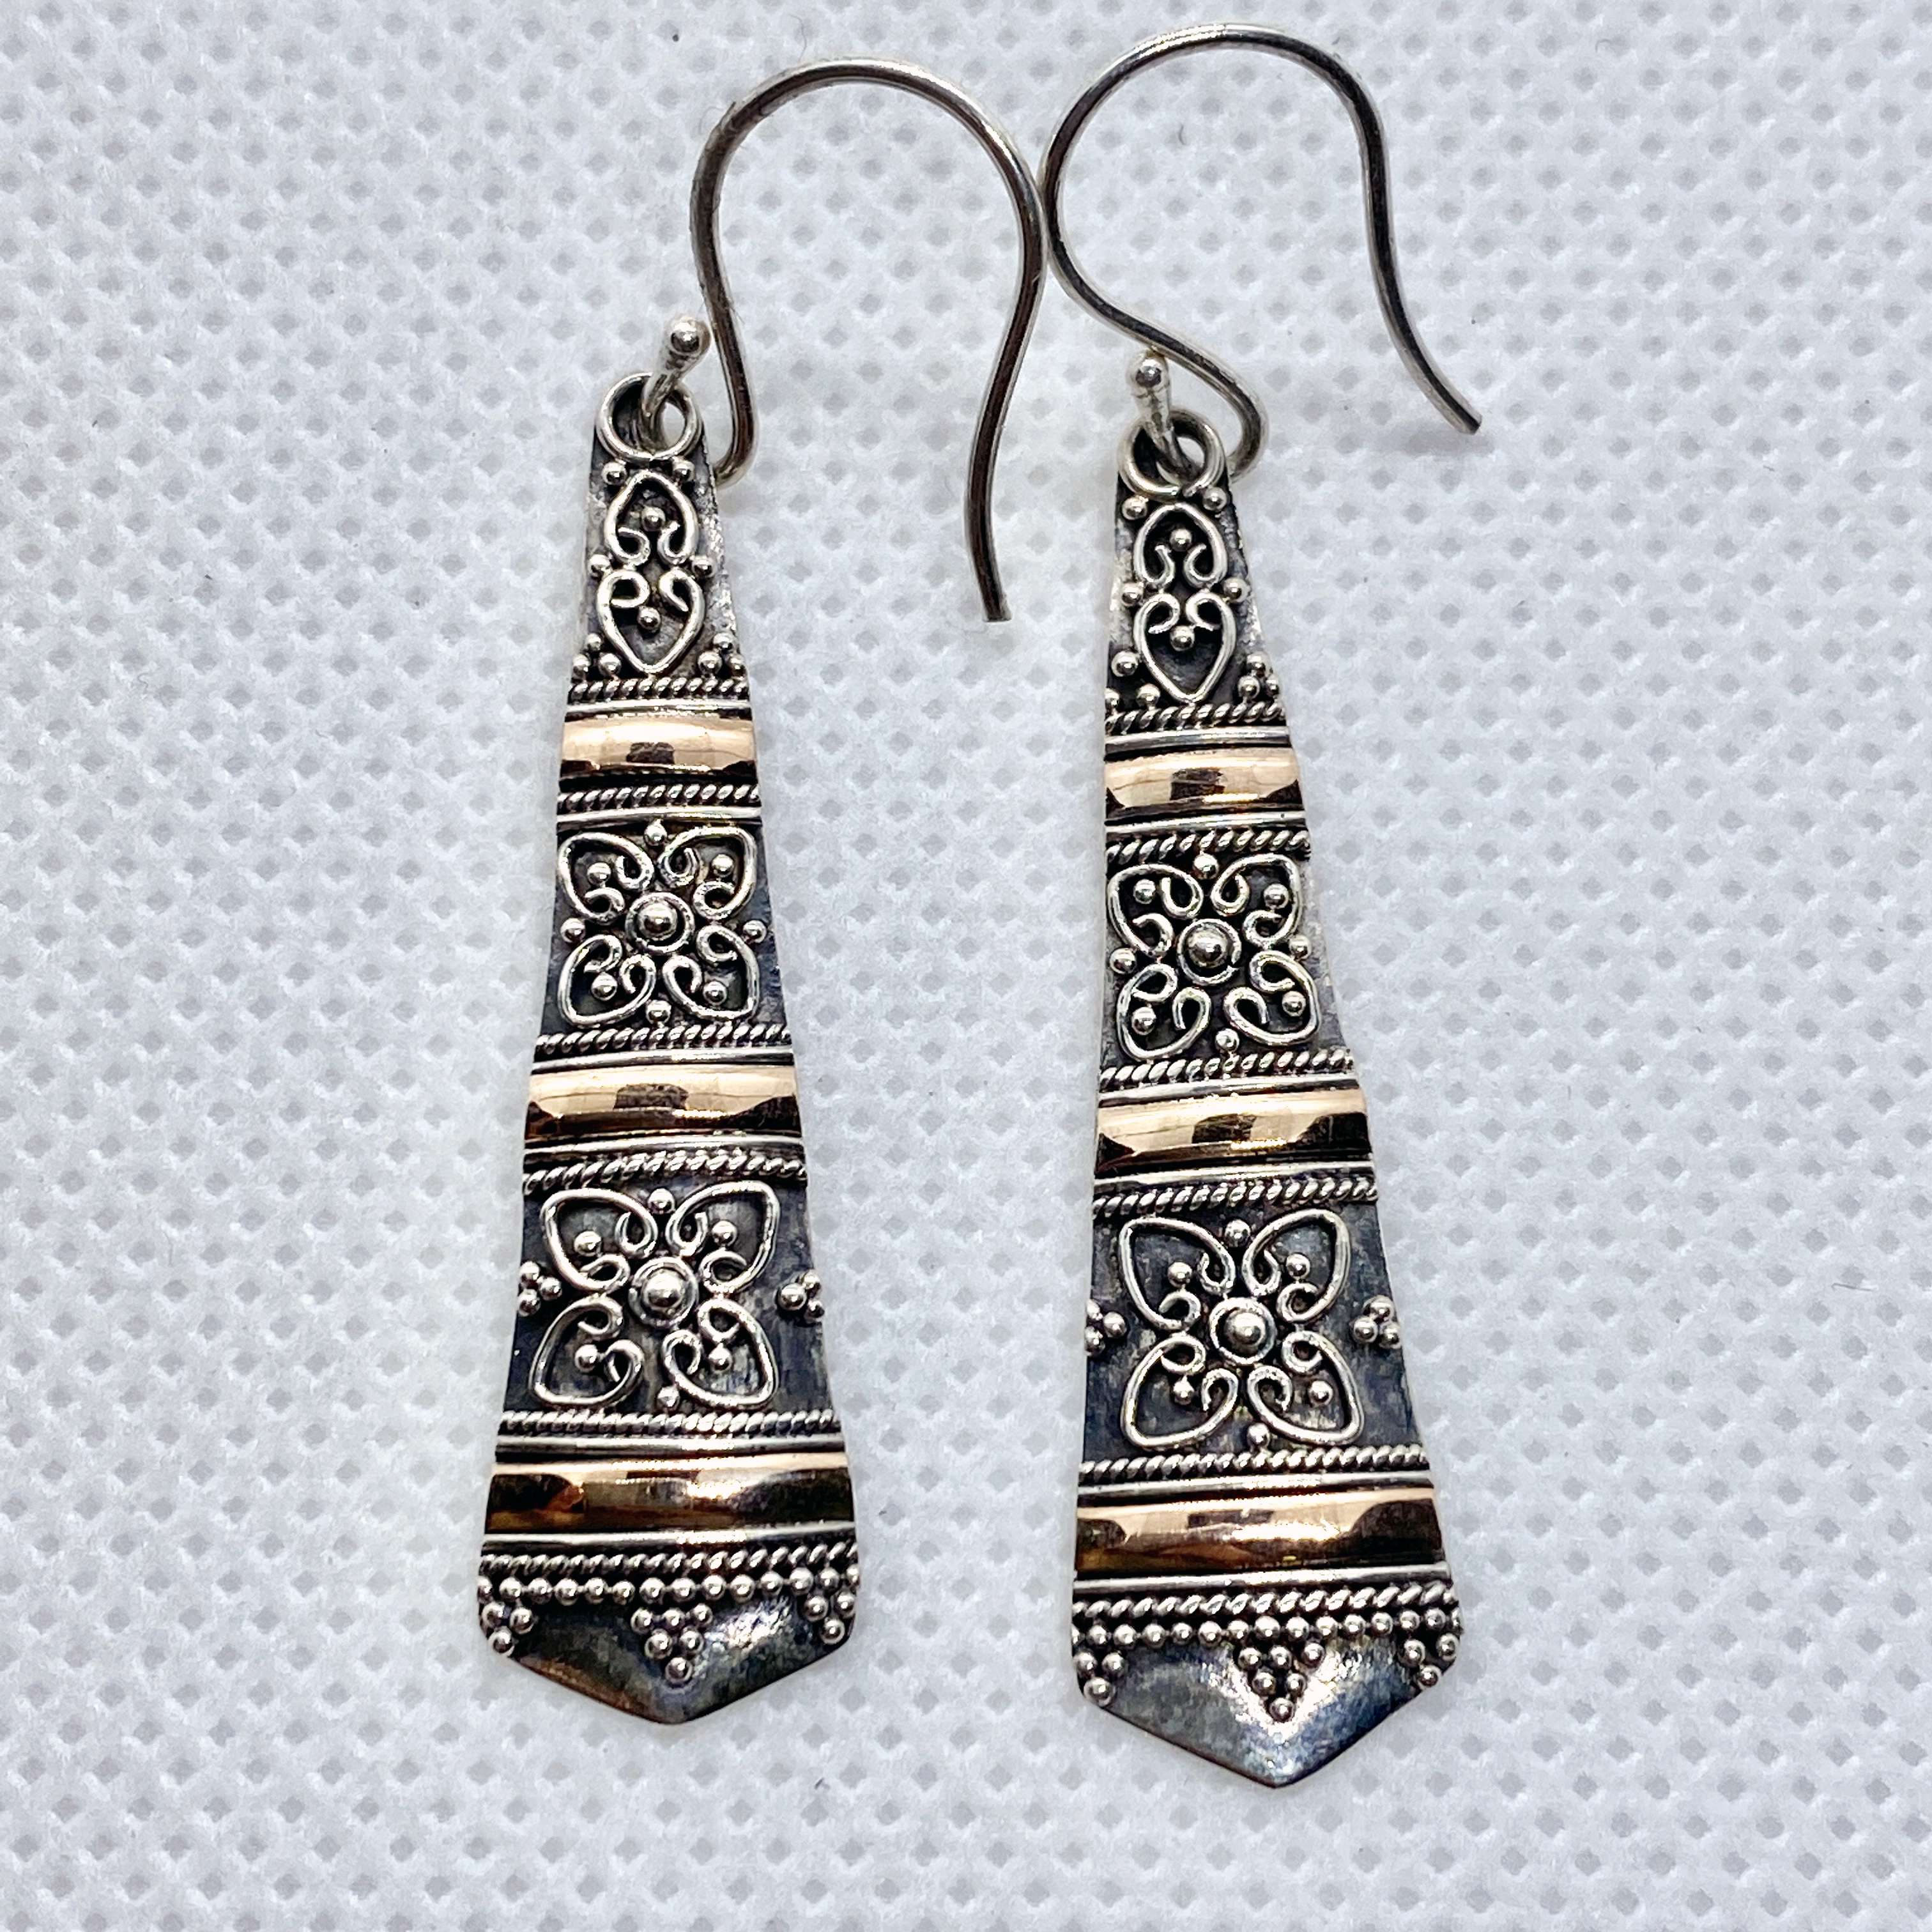 (UNIQUE 925 BALI SILVER FILIGREE EARRINGS WITH 18 KT GOLD ACCENT)